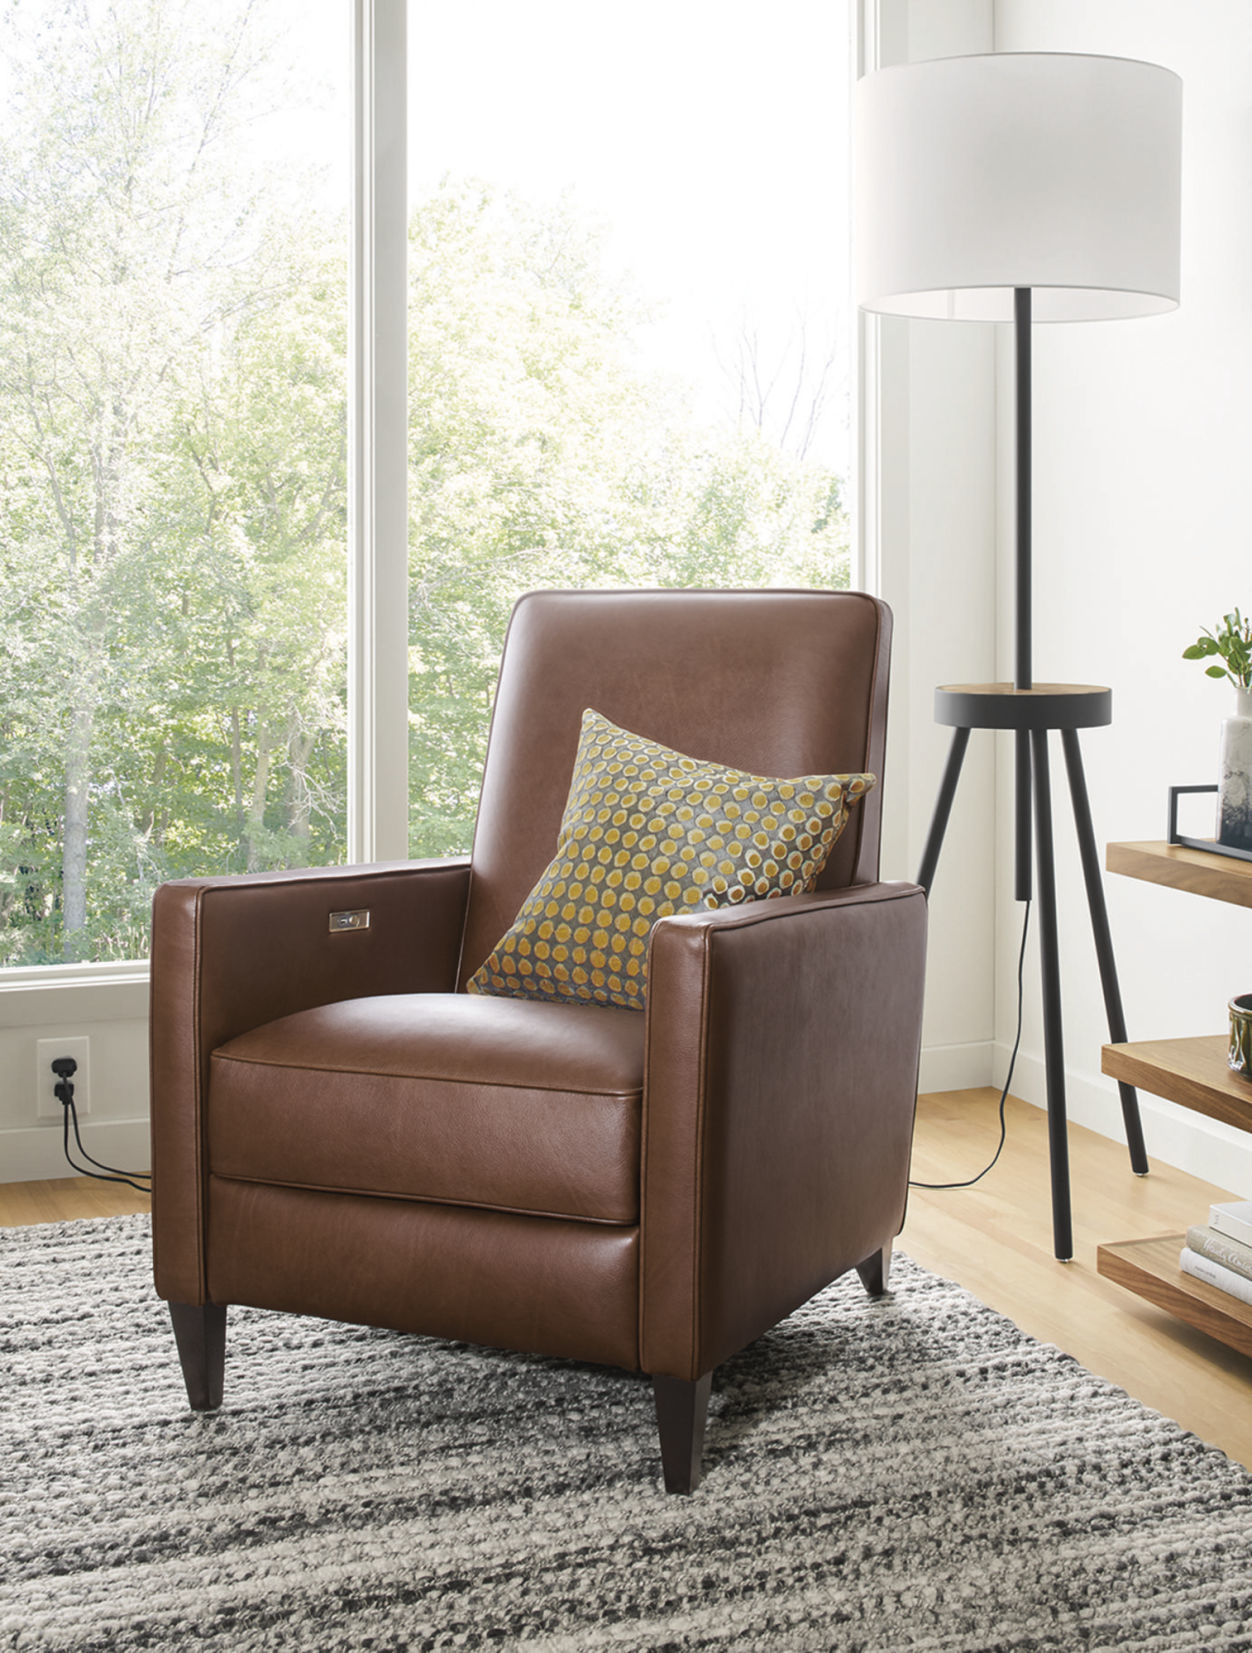 Now Your Home S Furniture Can Keep You Connected